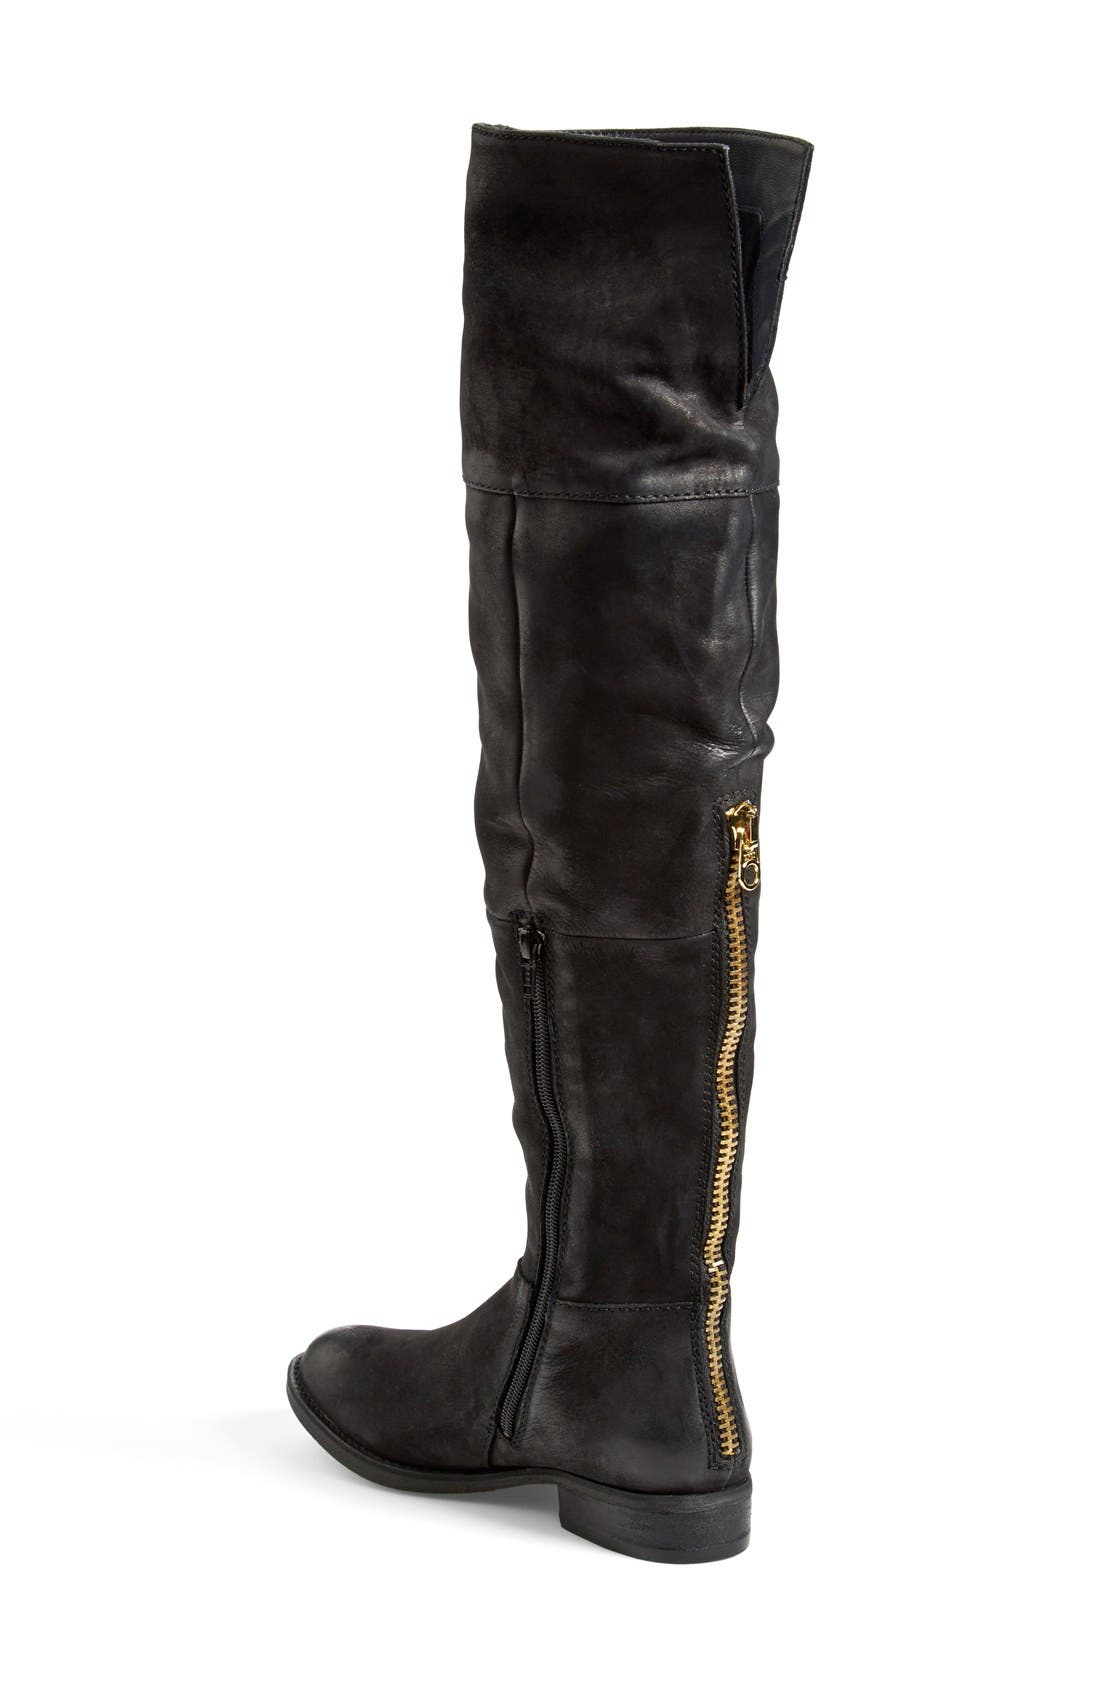 'Heisnbrg' Leather Over the Knee Boot,                             Alternate thumbnail 3, color,                             001